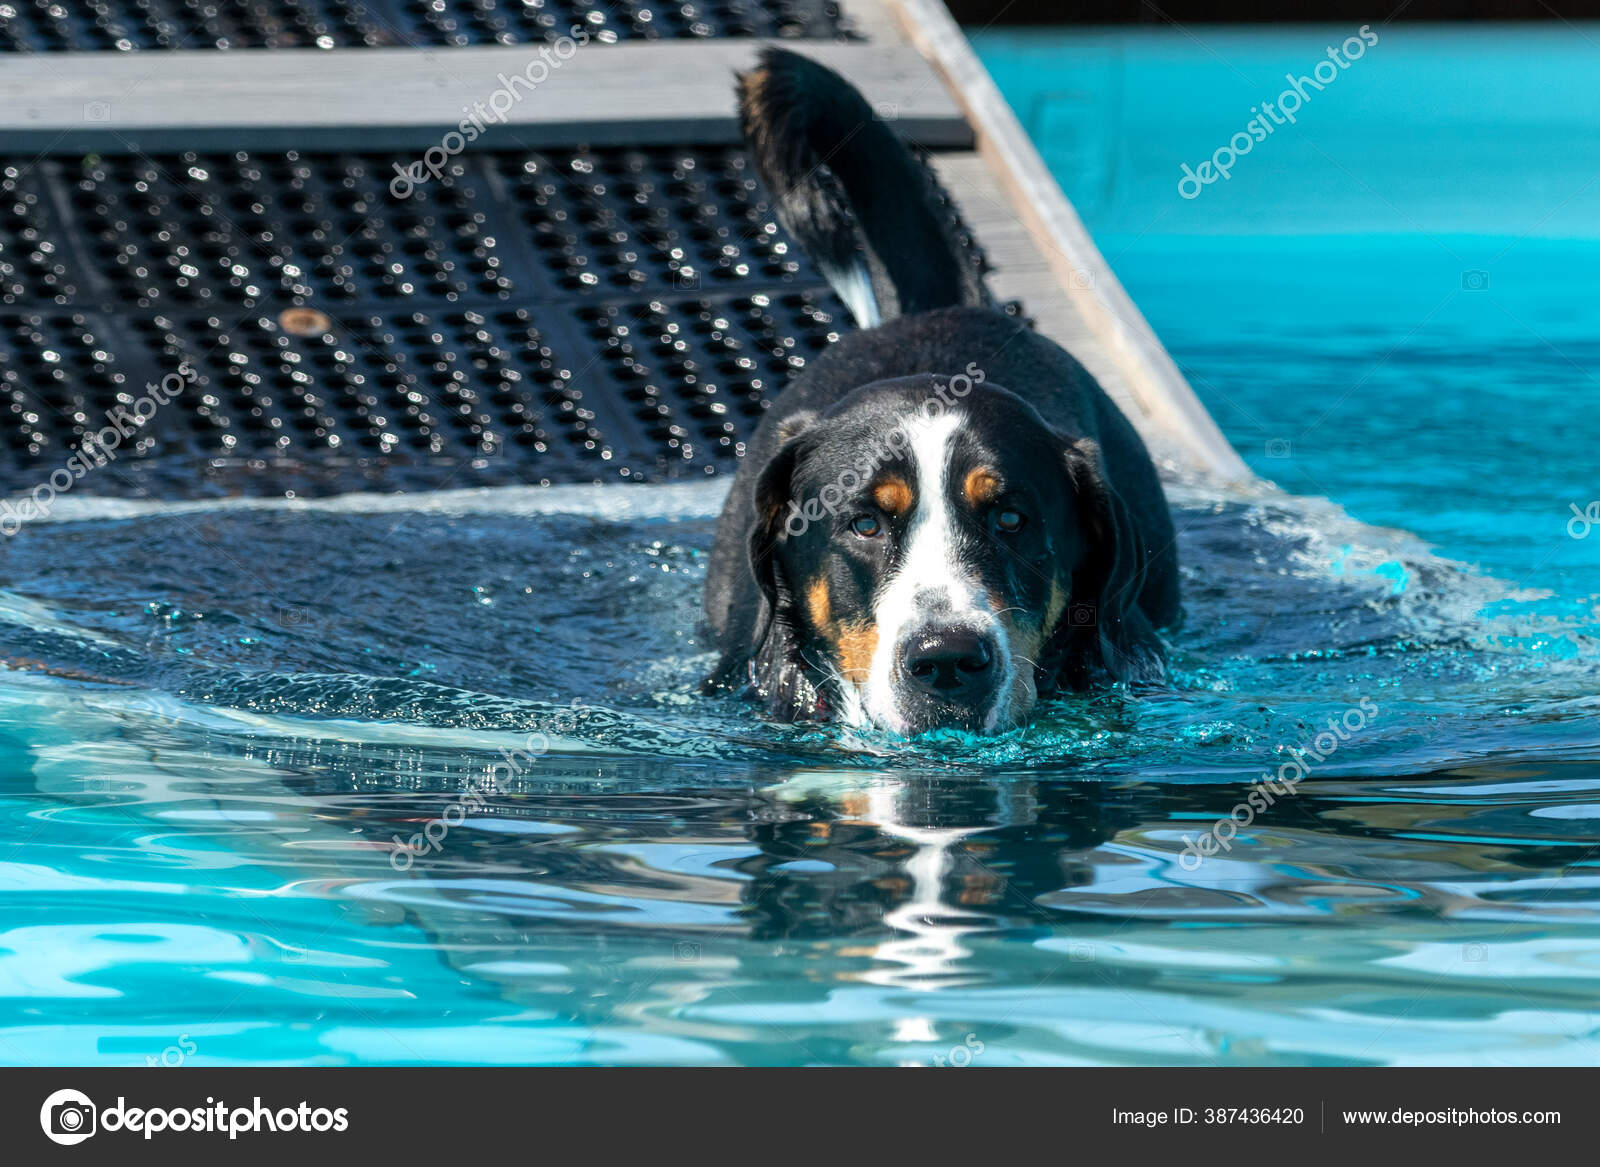 12 inches (30cm) 16 inches (40cm) the bearings and support of the pawramp lite have been tested to hold weights of up to to 70lbs (30kg) and the ramp itself weighs 8lbs. Swiss Mountain Dog Going Swimming Large Pool Walking Ramp Stock Photo By C Feeferlump 387436420